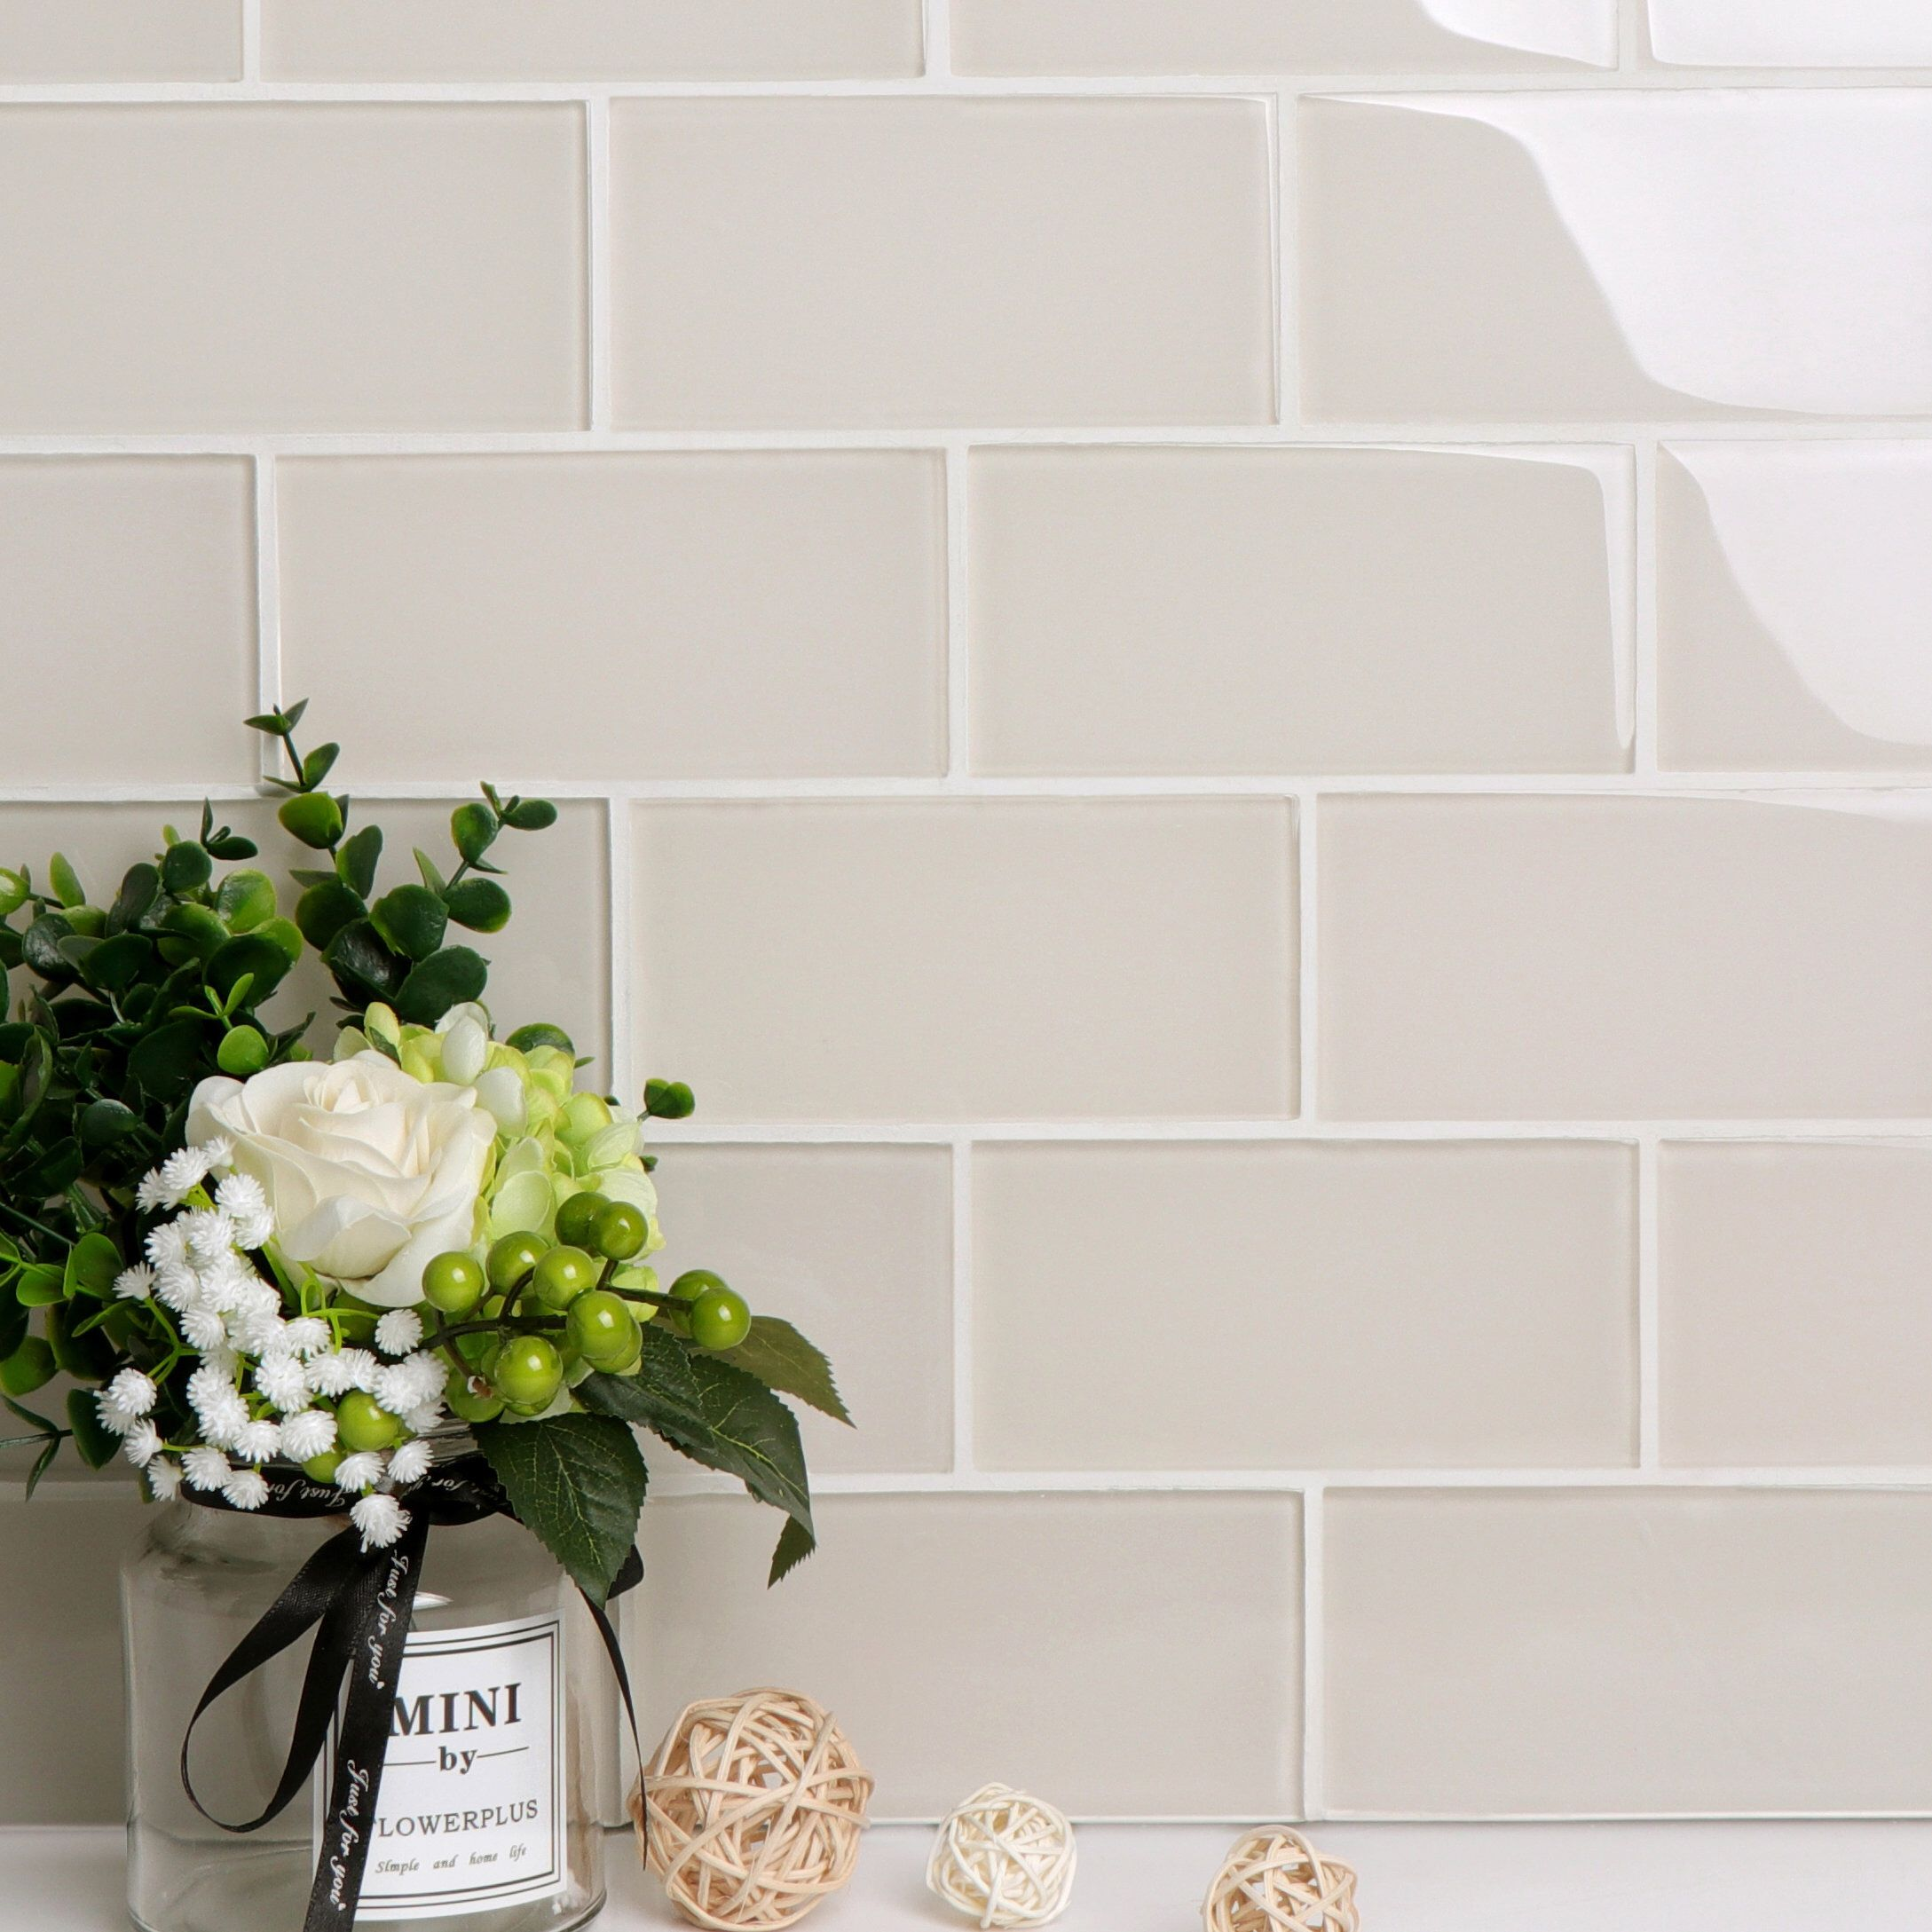 Premium Series 3 X 6 Glass Subway Tile In Ivory Glass Subway Tile Subway Tile Subway Tile Colors